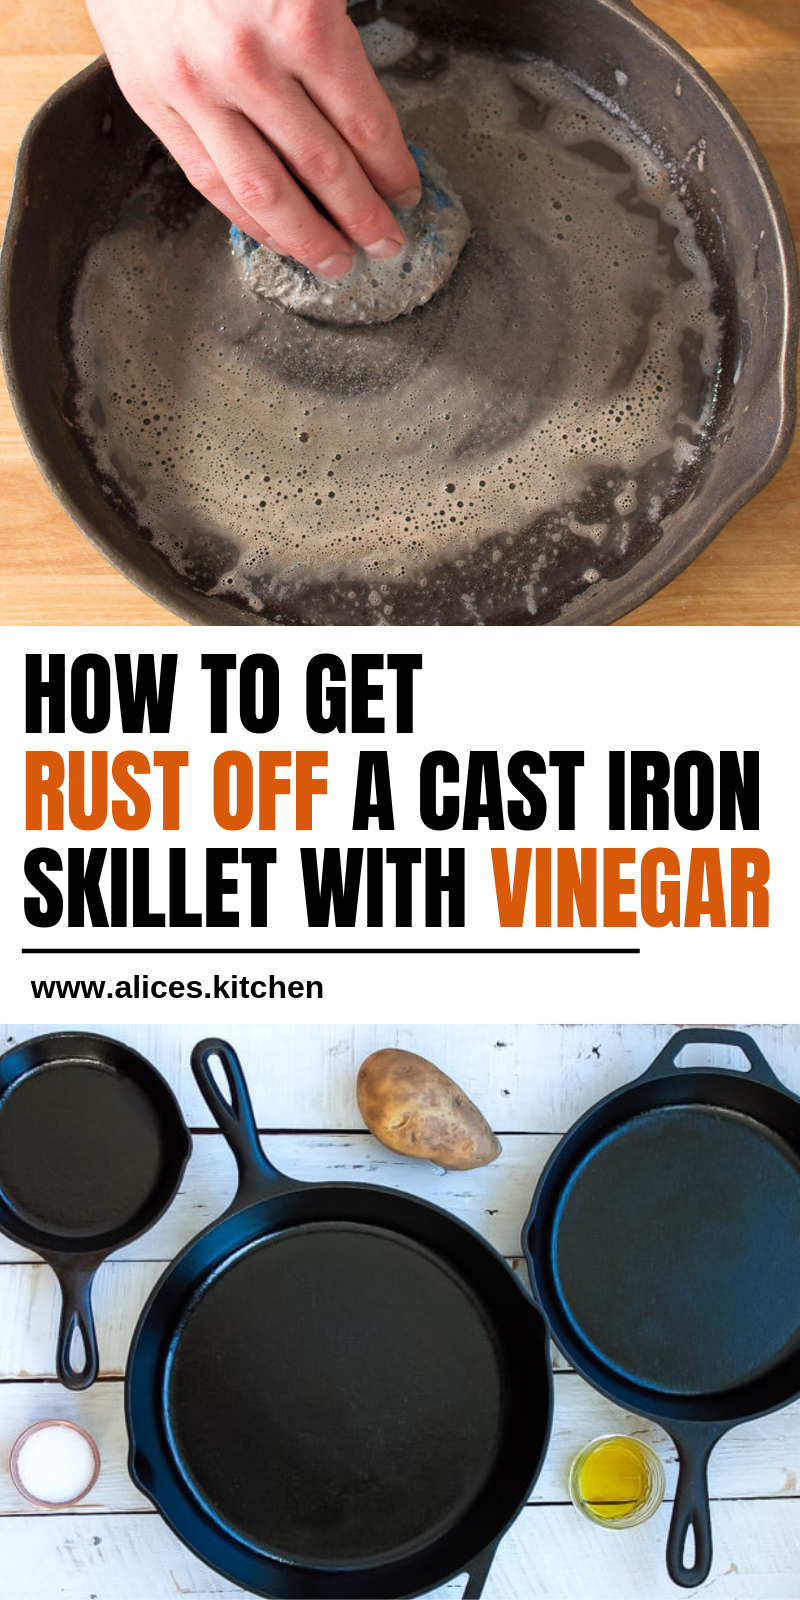 How To Get Rust Off A Cast Iron Skillet With Vinegar Cleaning Cast Iron Pans Cleaning Cast Iron Skillet Cast Iron Skillet